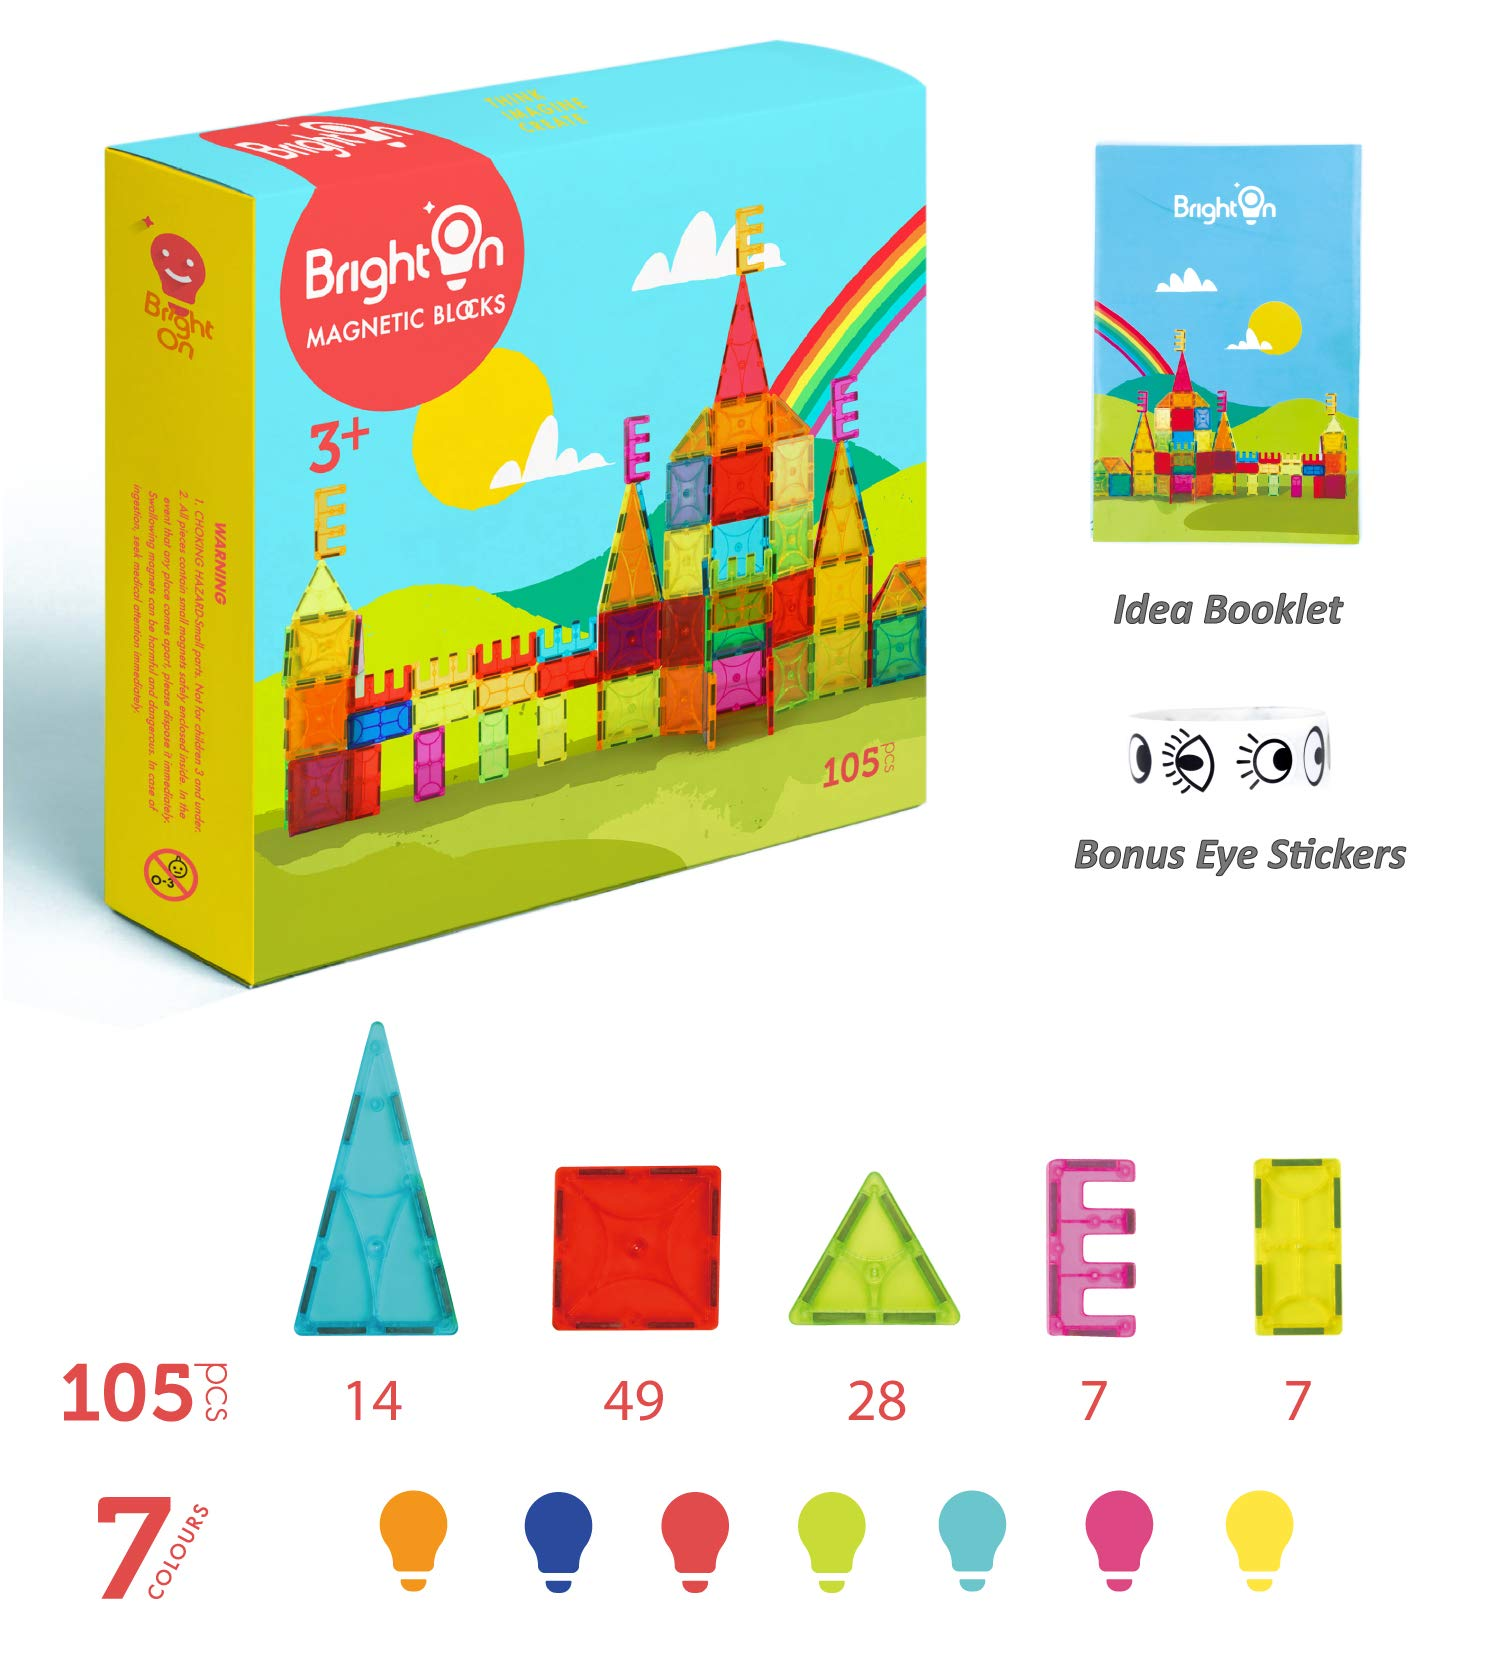 BrightOn Educational Kids Toys Magnetic Building Blocks, Creative Toys 3D Magnetic Blocks for Kids, Imagination Magnets Building Tiles for Children 105Pcs by BrightOn (Image #6)